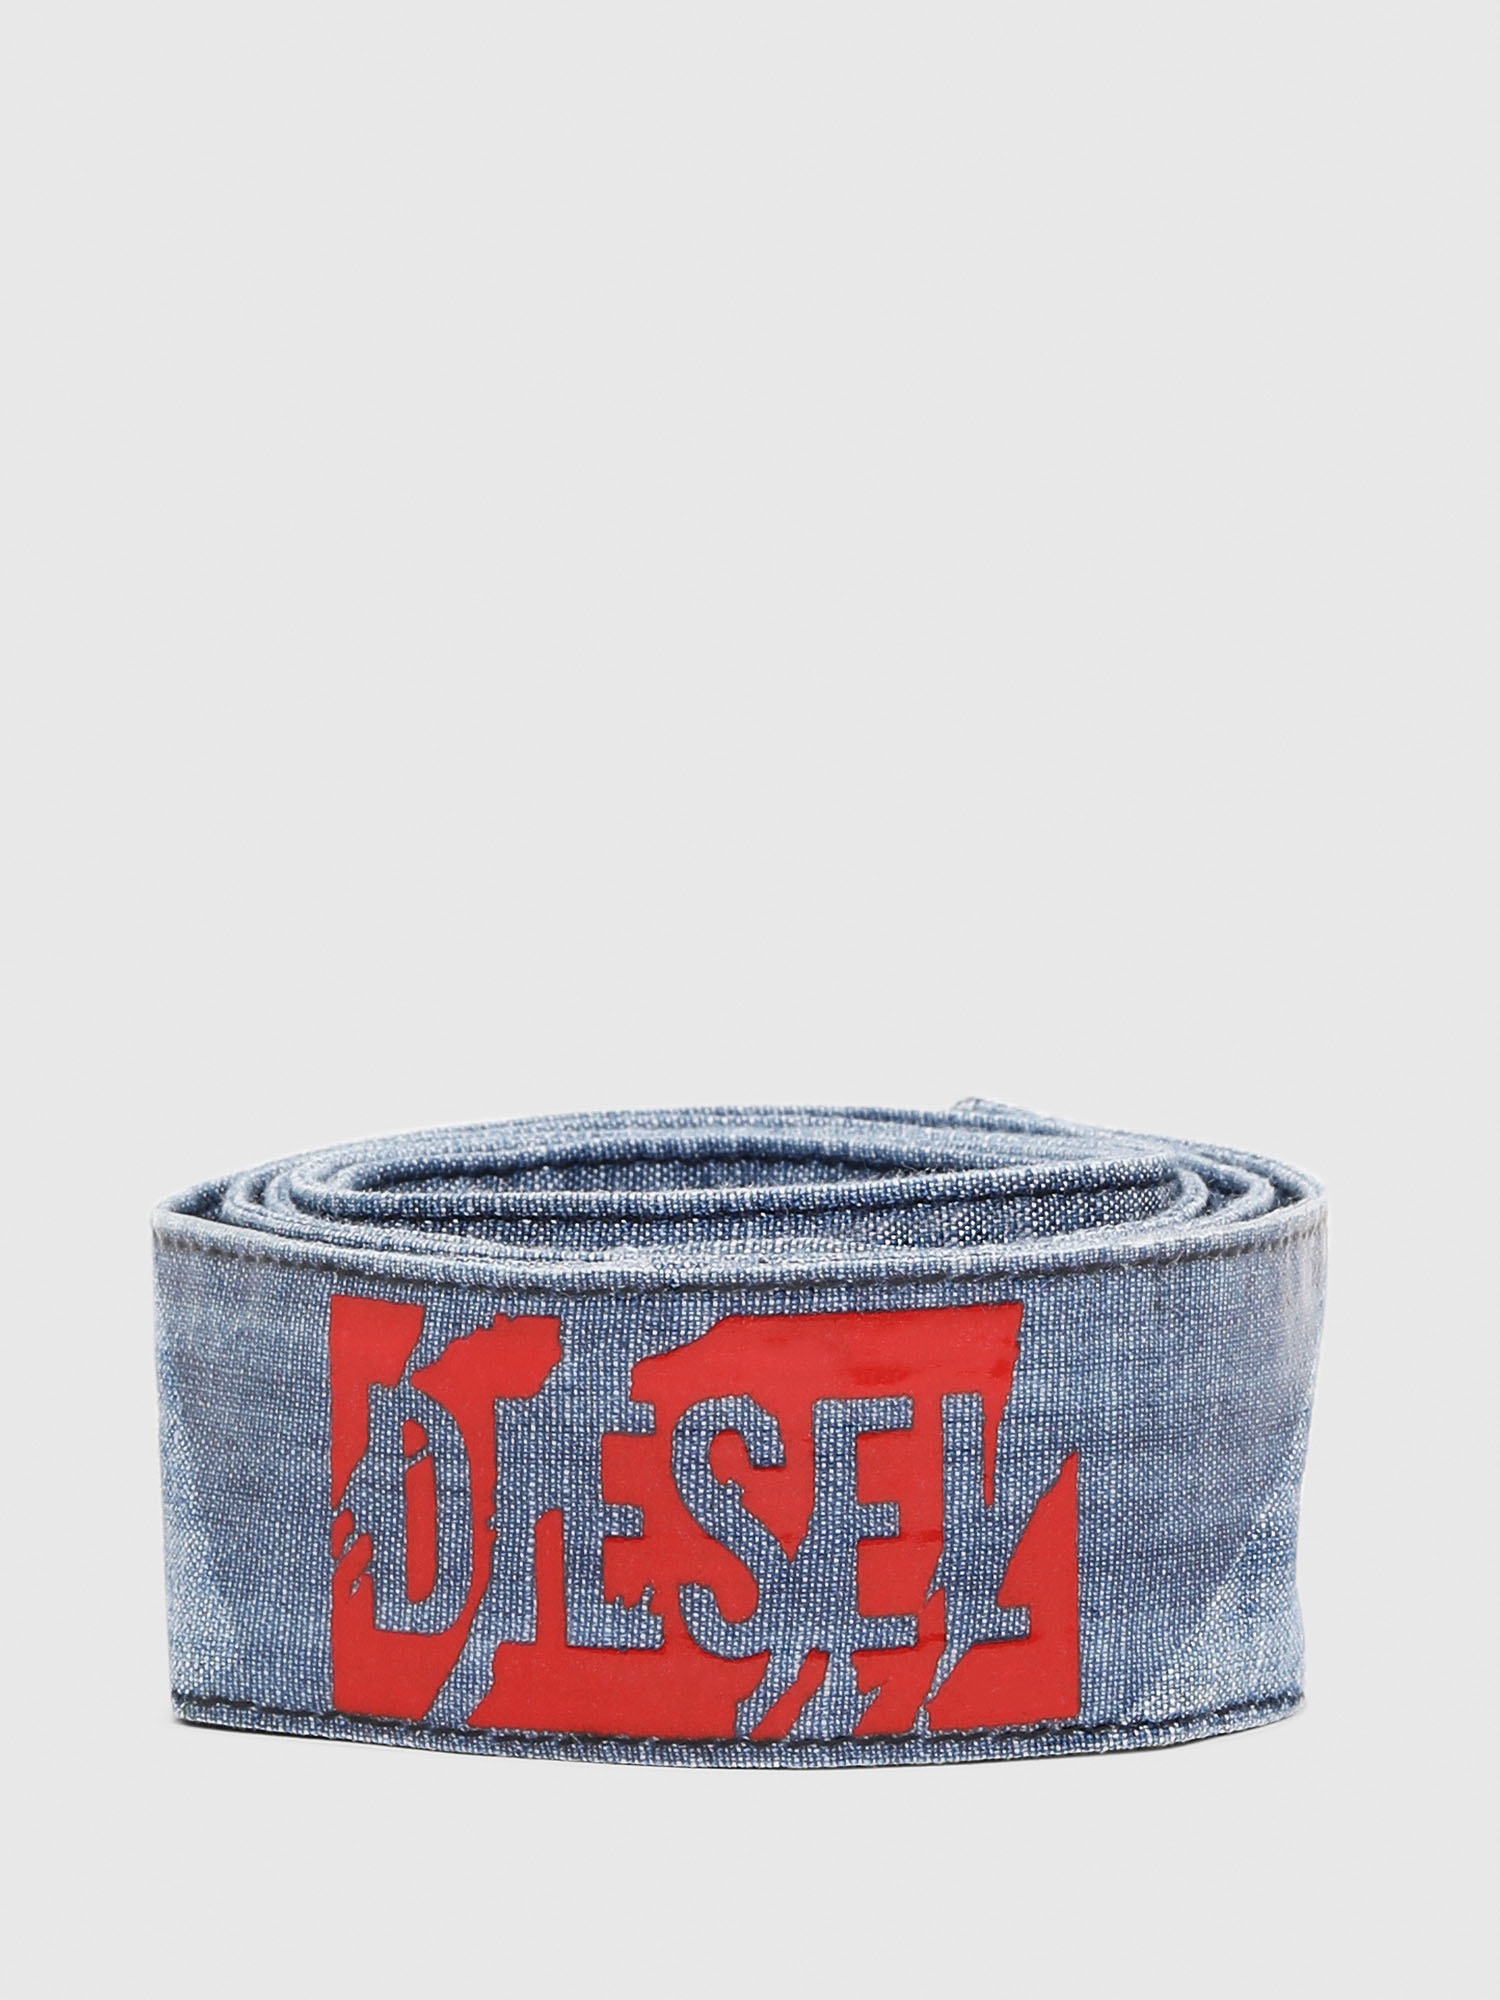 Diesel - BARRY,  - Belts - Image 1